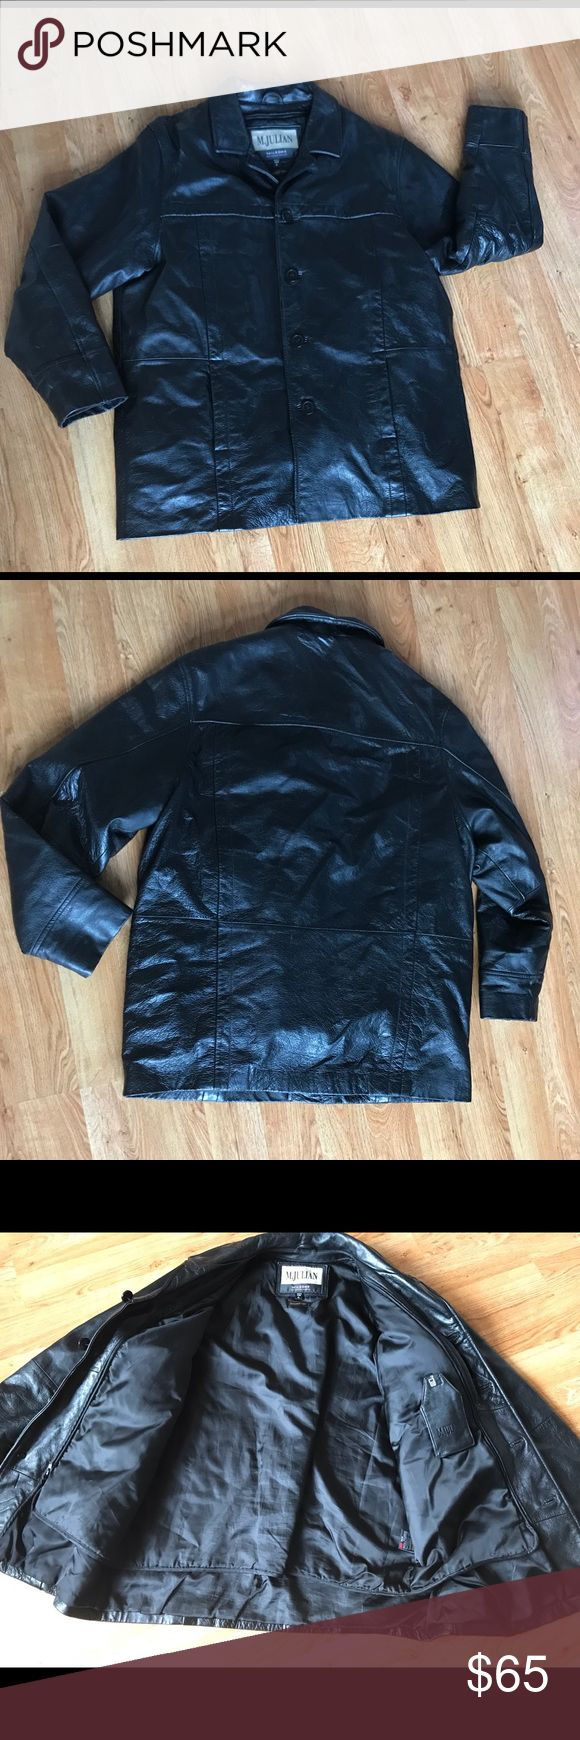 M JULIAN willsons leather jacket M julian willson lesther